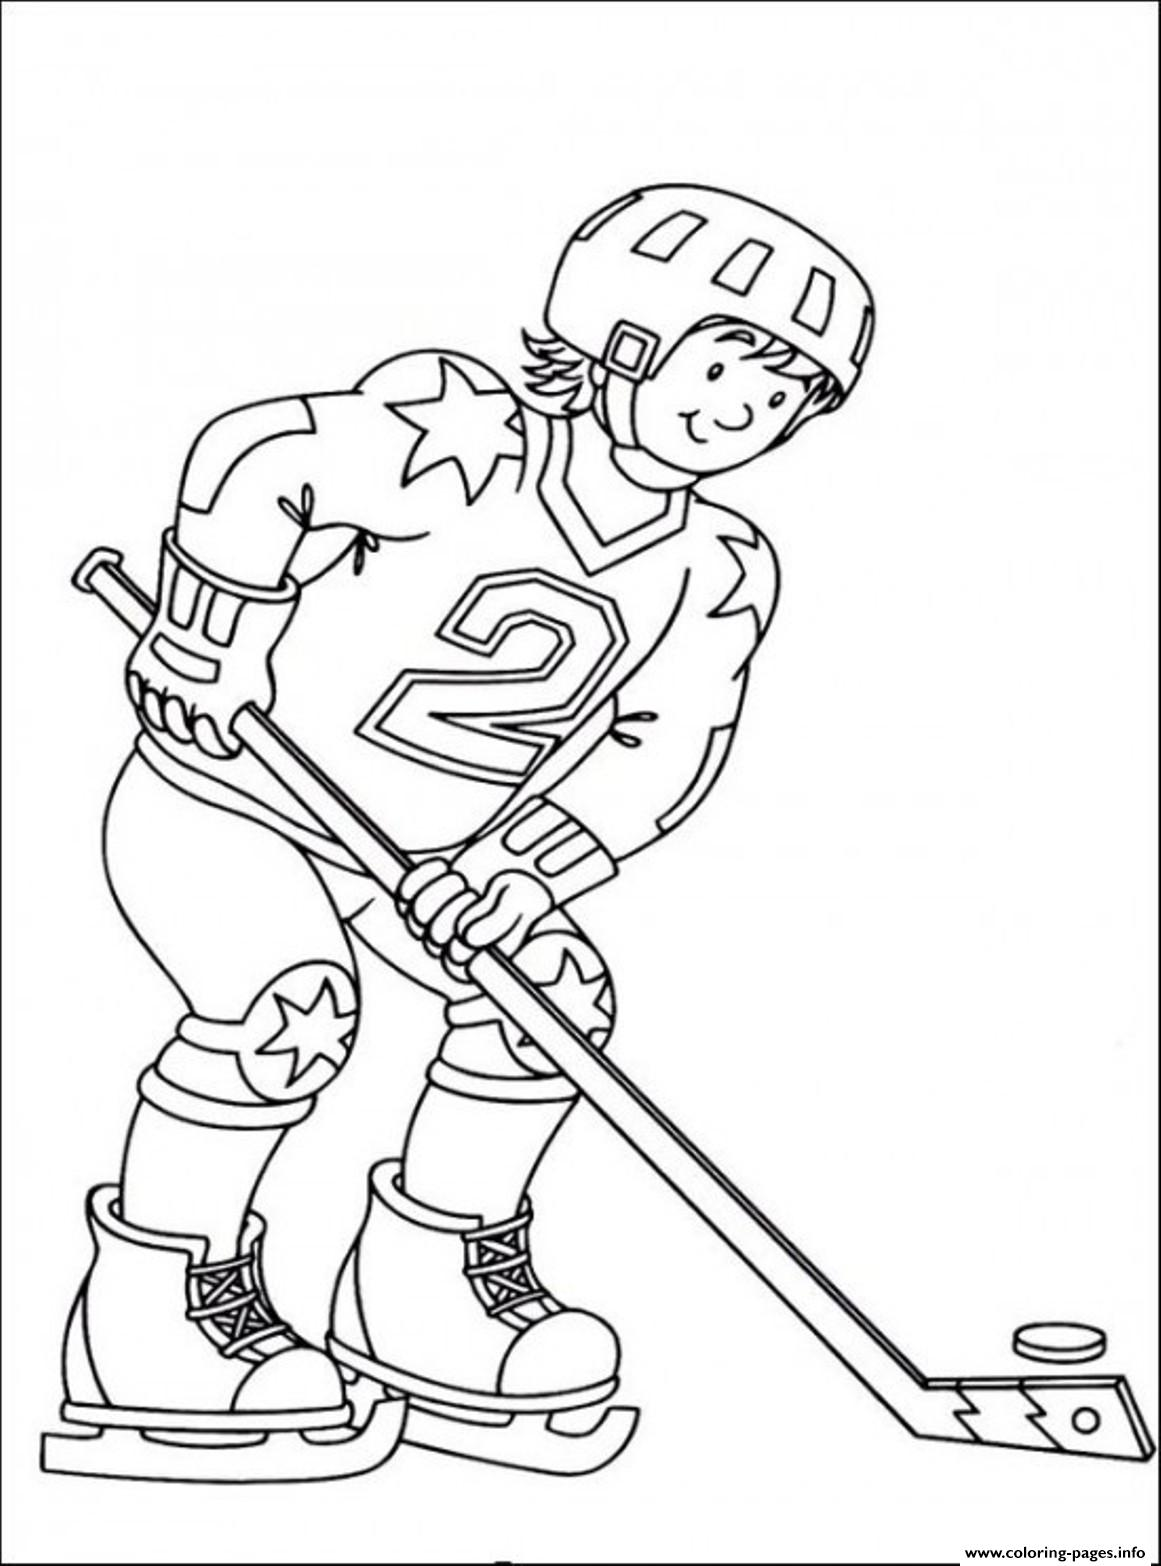 hockey coloring pages to print hockey coloring pages coloringpages1001com coloring pages hockey print to